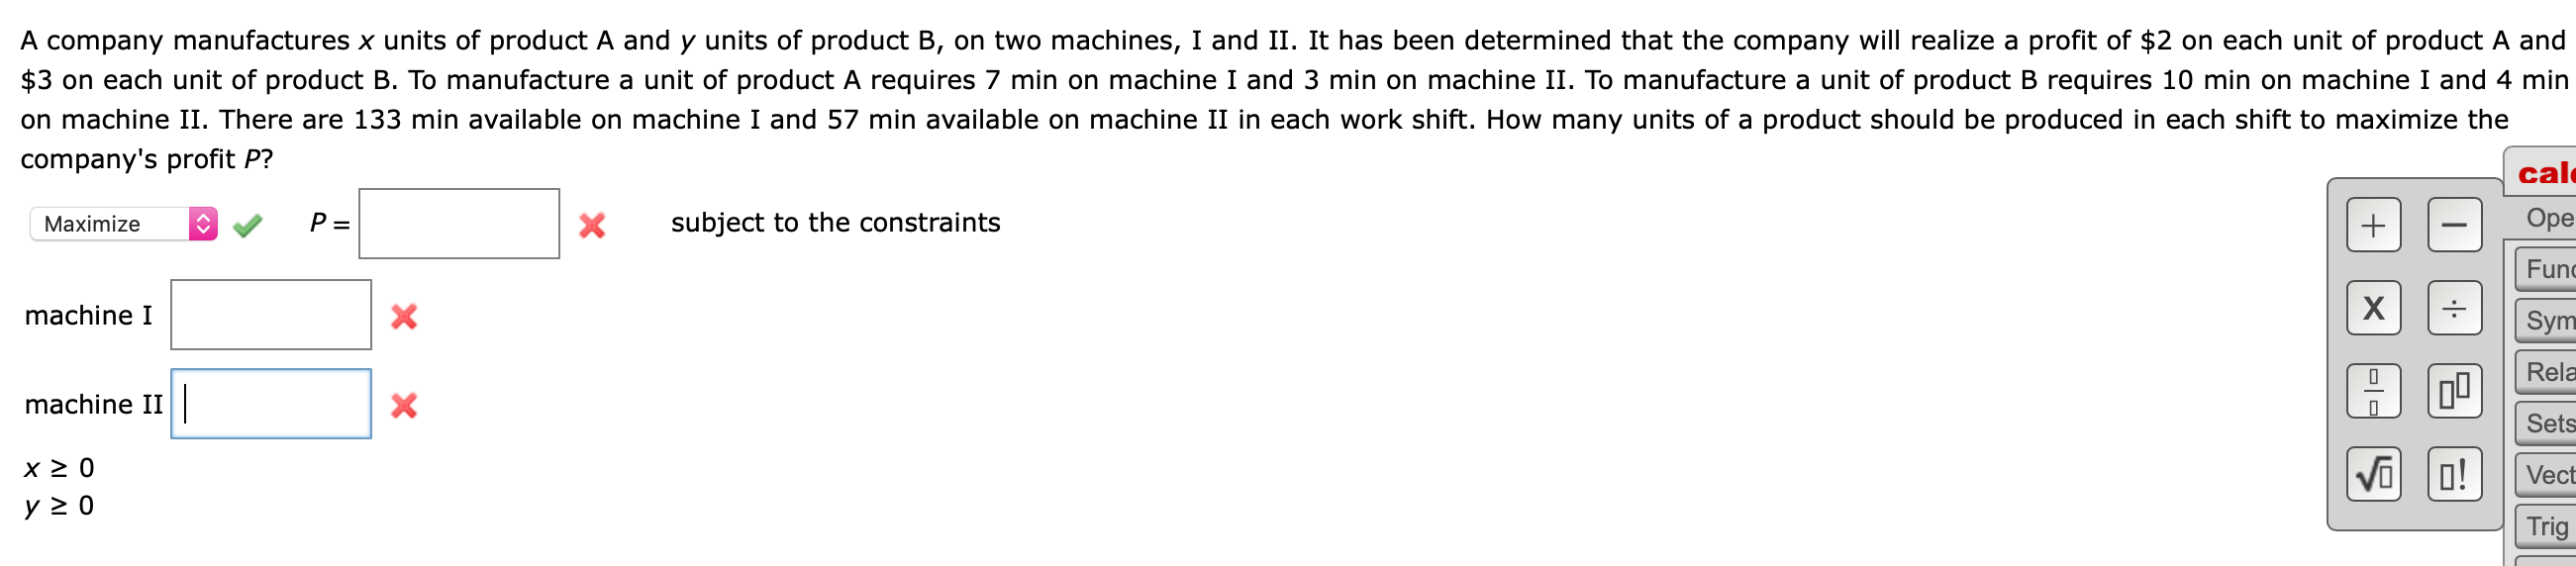 A company manufactures x units of product A and y units of product B, on two machines, I and II. It has been determined that the company will realize a profit of $2 on each unit of product A and $3 on each unit of product B. To manufacture a unit of product A requires 7 min on machine I and 3 min on machine II. To manufacture a unit of product B requires 10 min on machine I and 4 min on machine II. There are 133 min available on machine I and 57 min available on machine II in each work shift. How many units of a product should be produced in each shift to maximize the company's profit P? cal Оре subject to the constraints P = X Maximize Fun х X machine I Sym Rela machine II Sets  VO x 2 0 O! Vect y 0 Trig + X